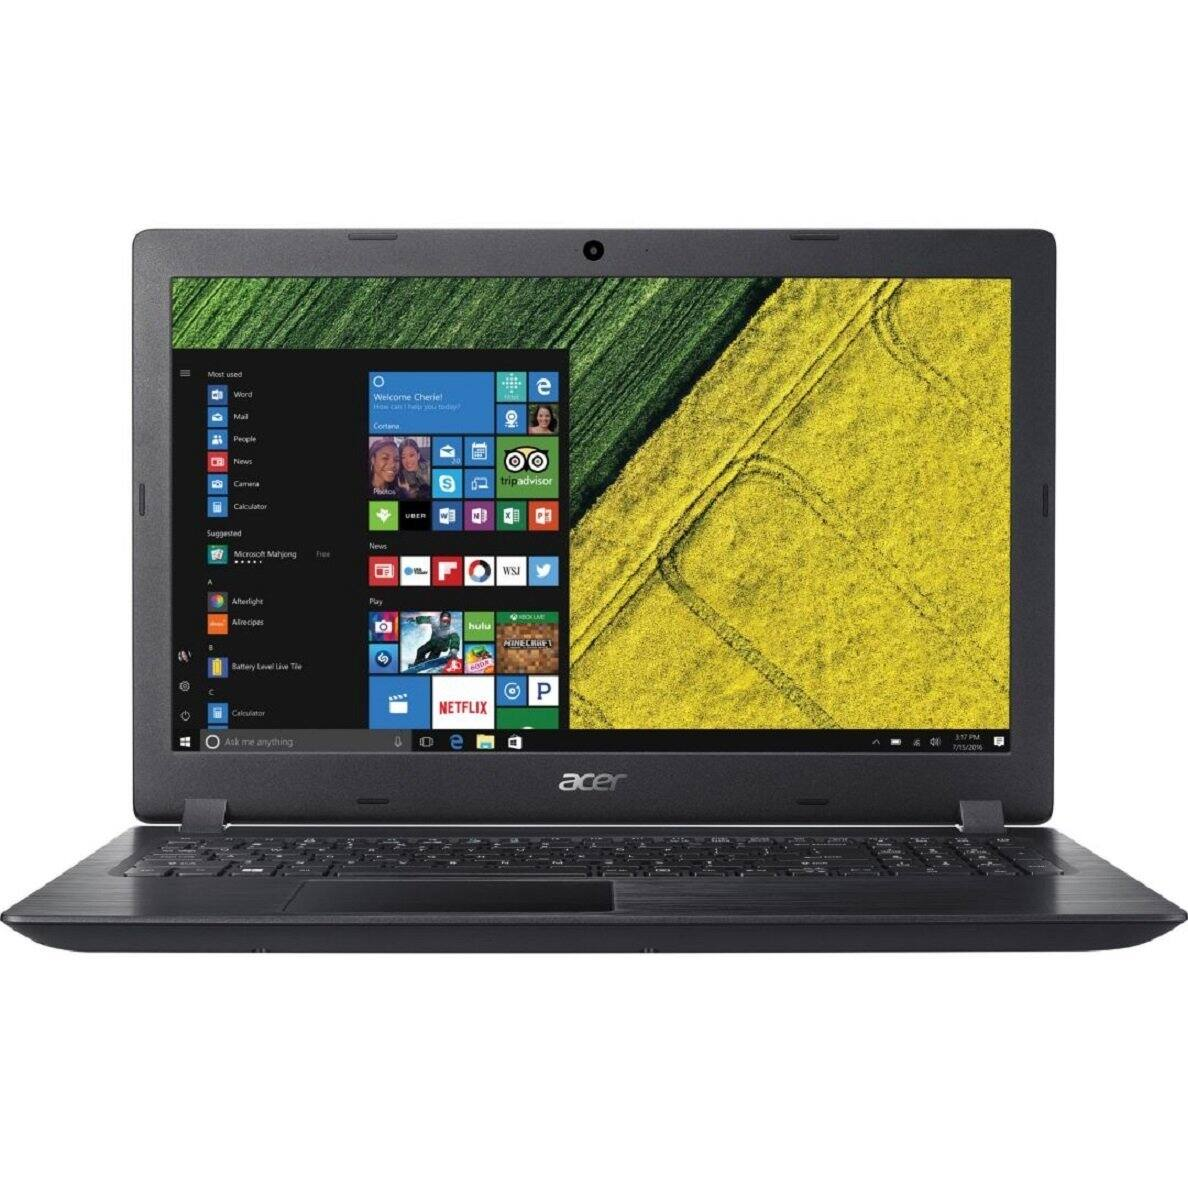 """Acer Aspire 3 15.6"""" Laptop: A9-9420, 6GB DDR4, 1TB HDD, Radeon R5, Win 10 $200 + Free Store Pickup @ Staples"""